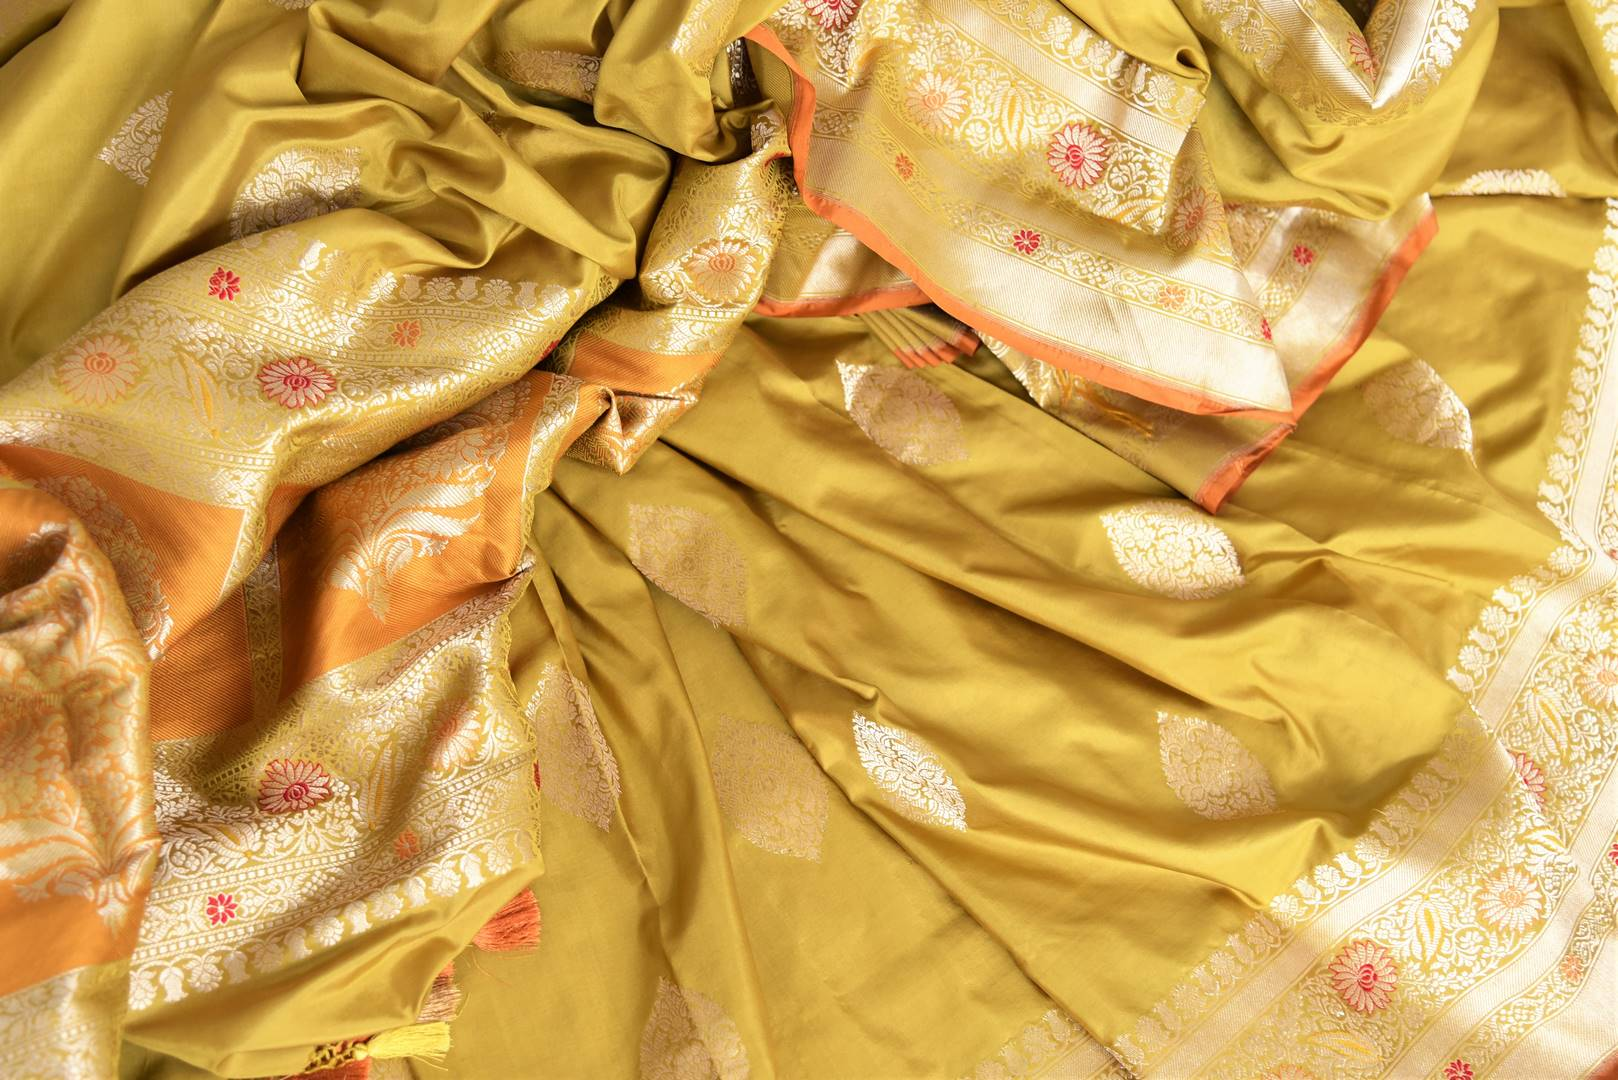 Rich gold Banarasi silk saree buy online in USA with zari buta and border. The saree is sure to bring splendor to your Indian wedding look. If you are looking for Indian designer silk sarees, Banarasi sarees in USA, then Pure Elegance clothing store is your one-stop solution, shop now.-details